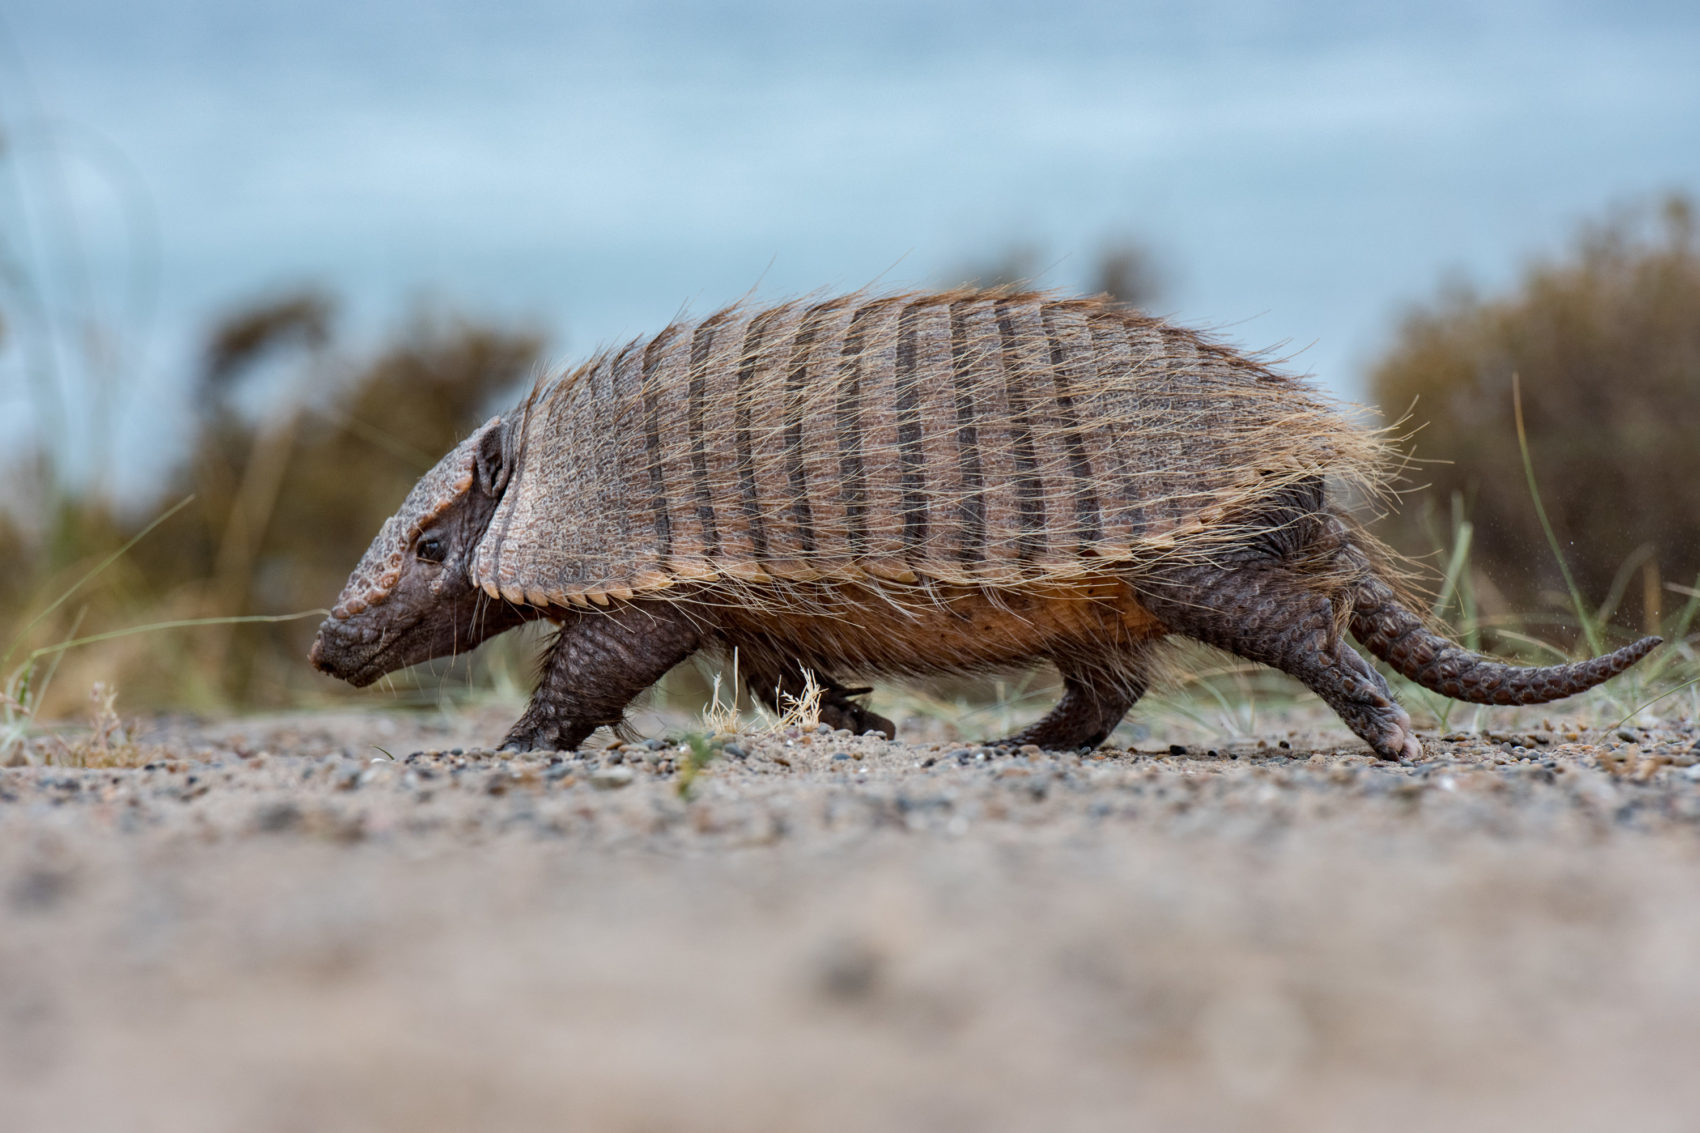 armadillo close up portrait in patagonia